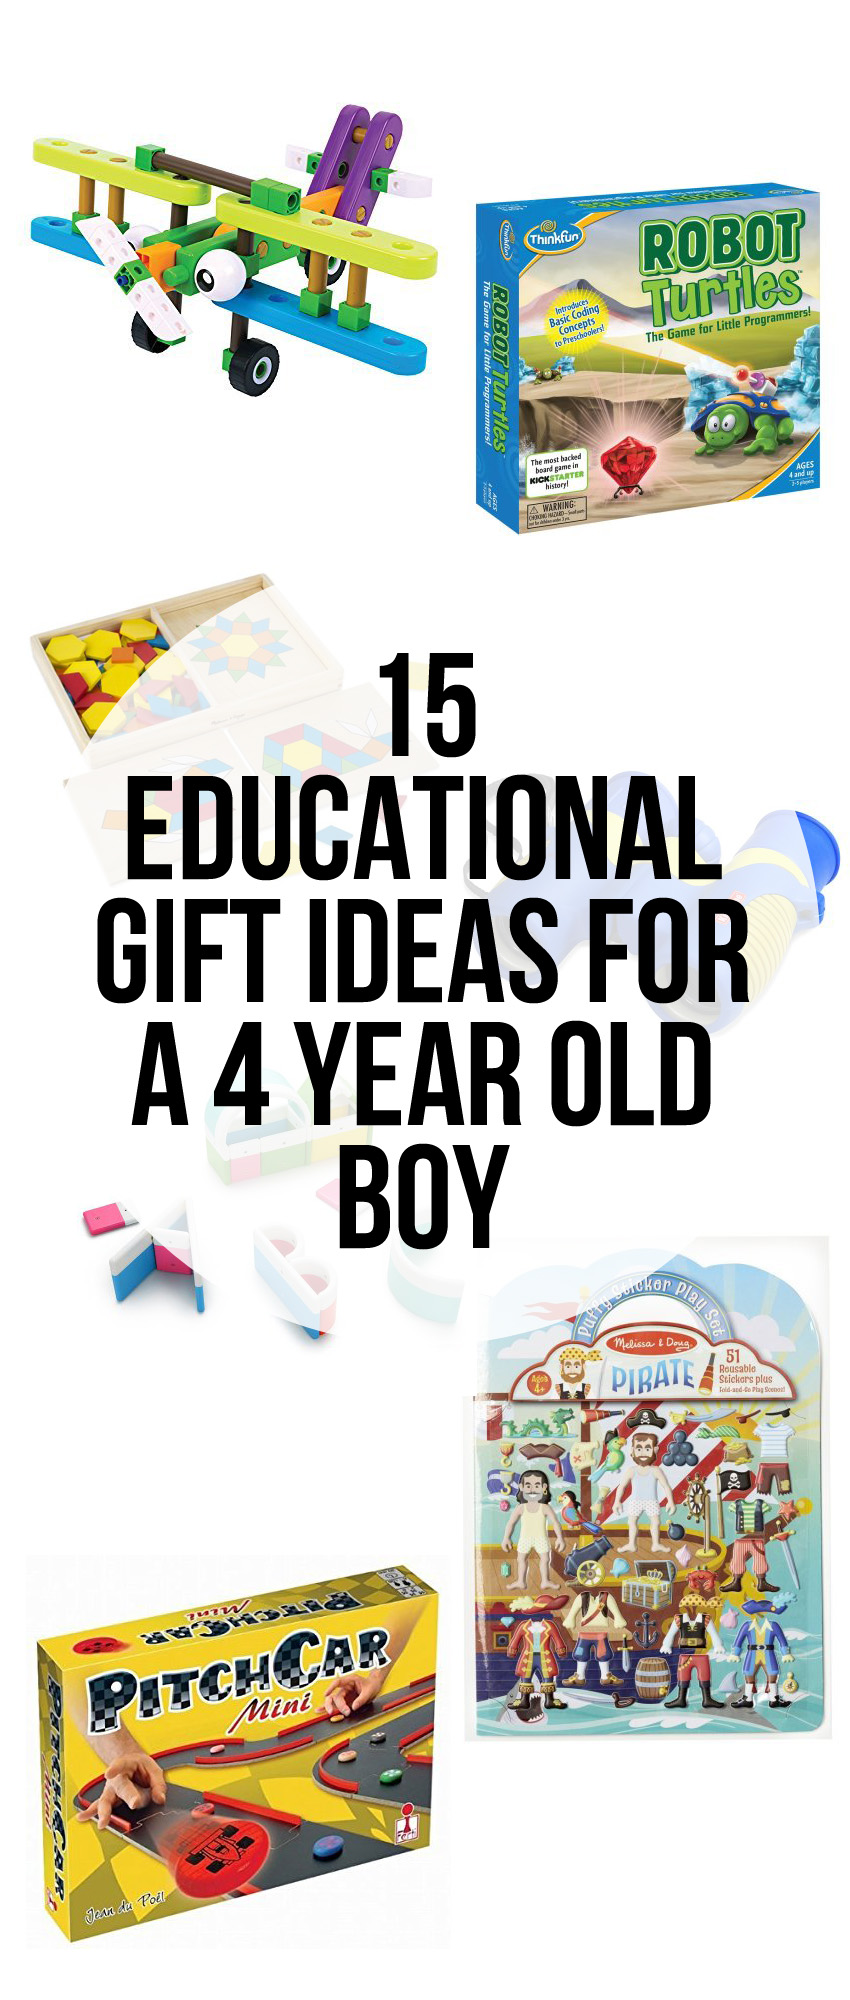 Gift Guide - 15 Educational Gift Ideas for a 4 Year Old Boy